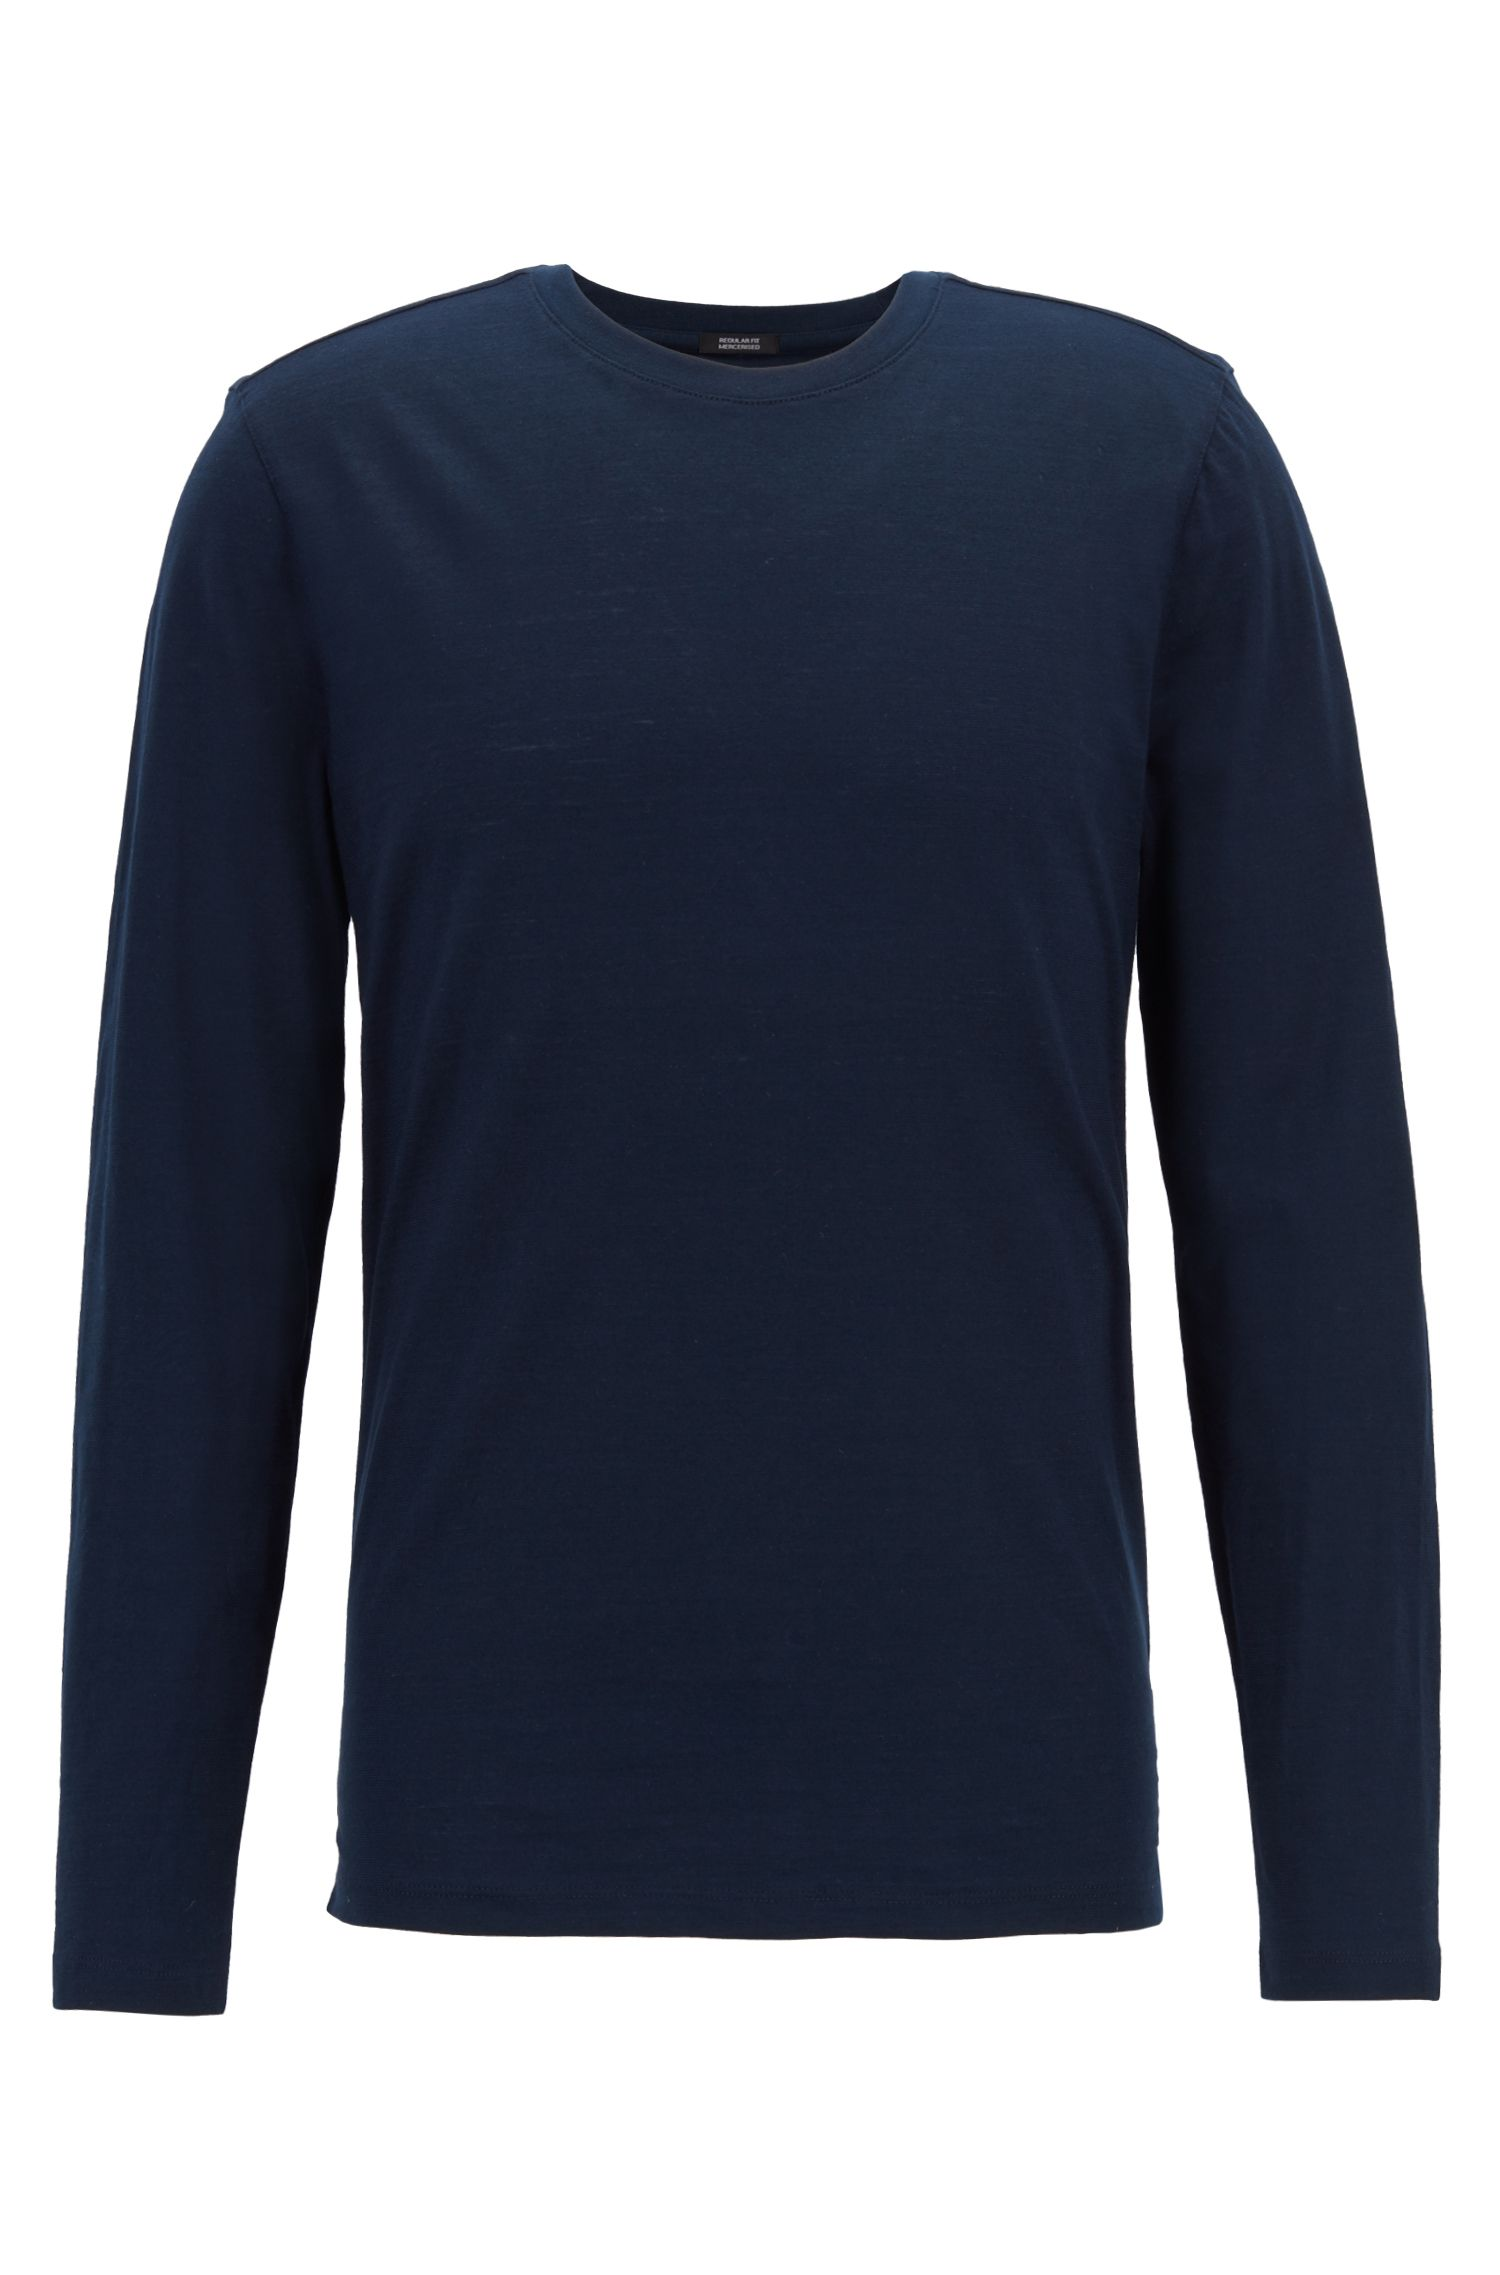 Long-sleeved regular-fit T-shirt in mercerised slub cotton, Dark Blue